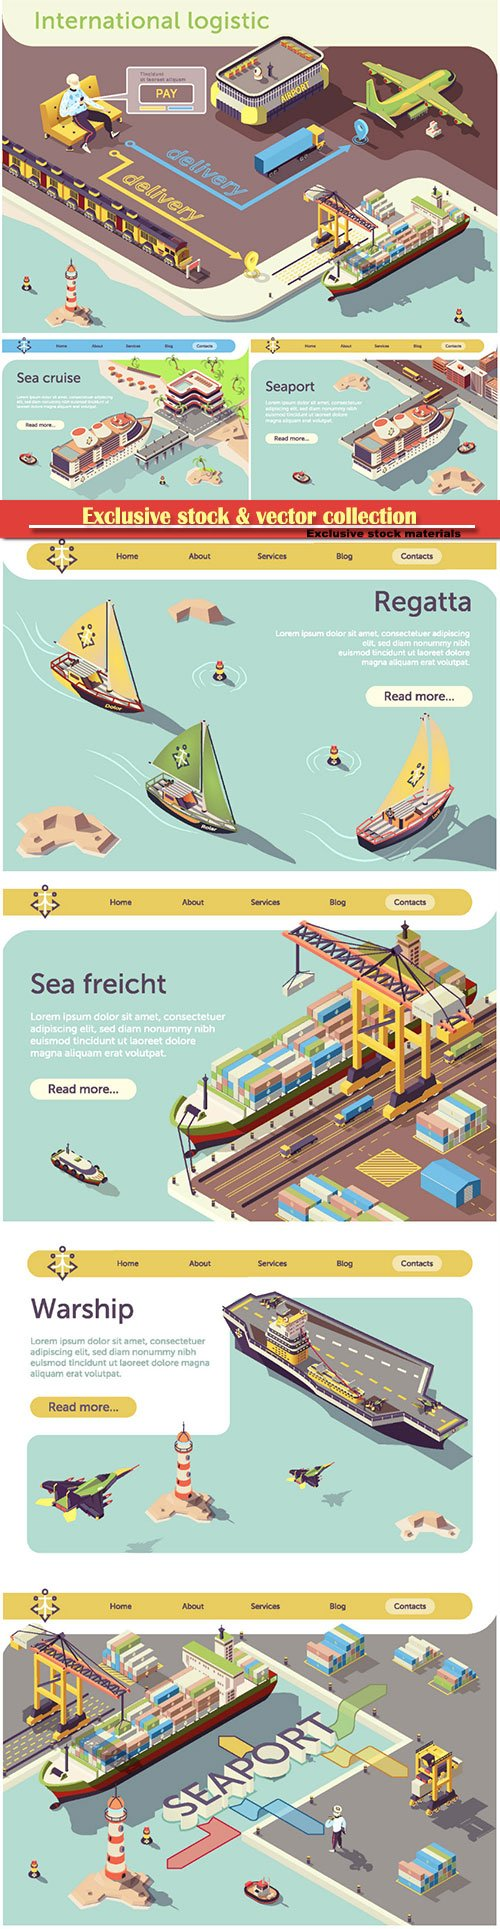 Online International Logistic Infographic Banner